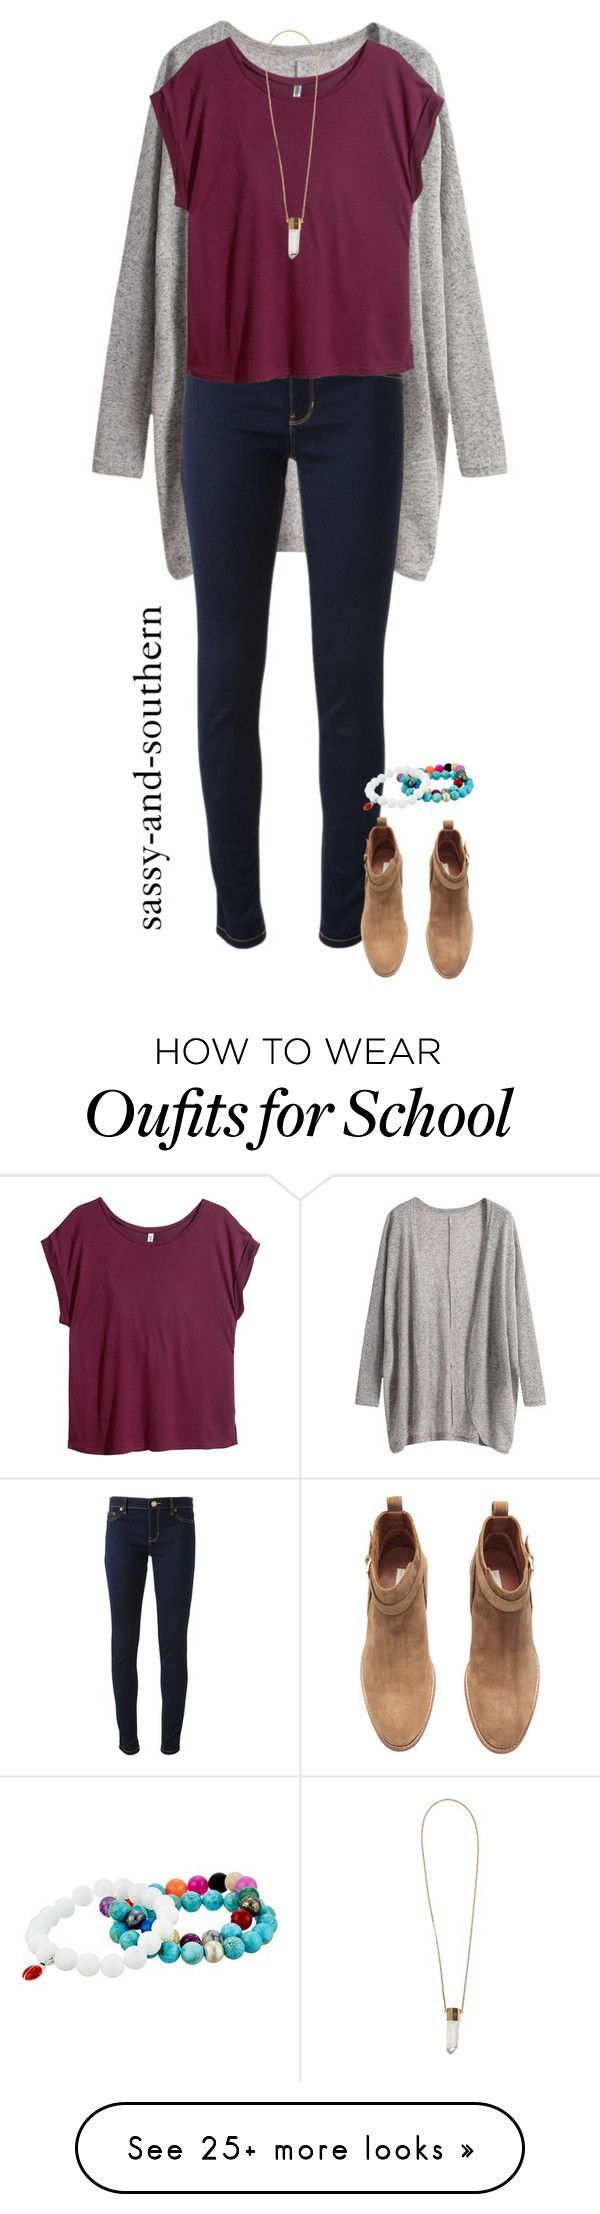 """school outfit"" by sassy-and-southern on Polyvore featuring Michael Kors, H&M, C... - Polyvore Style"